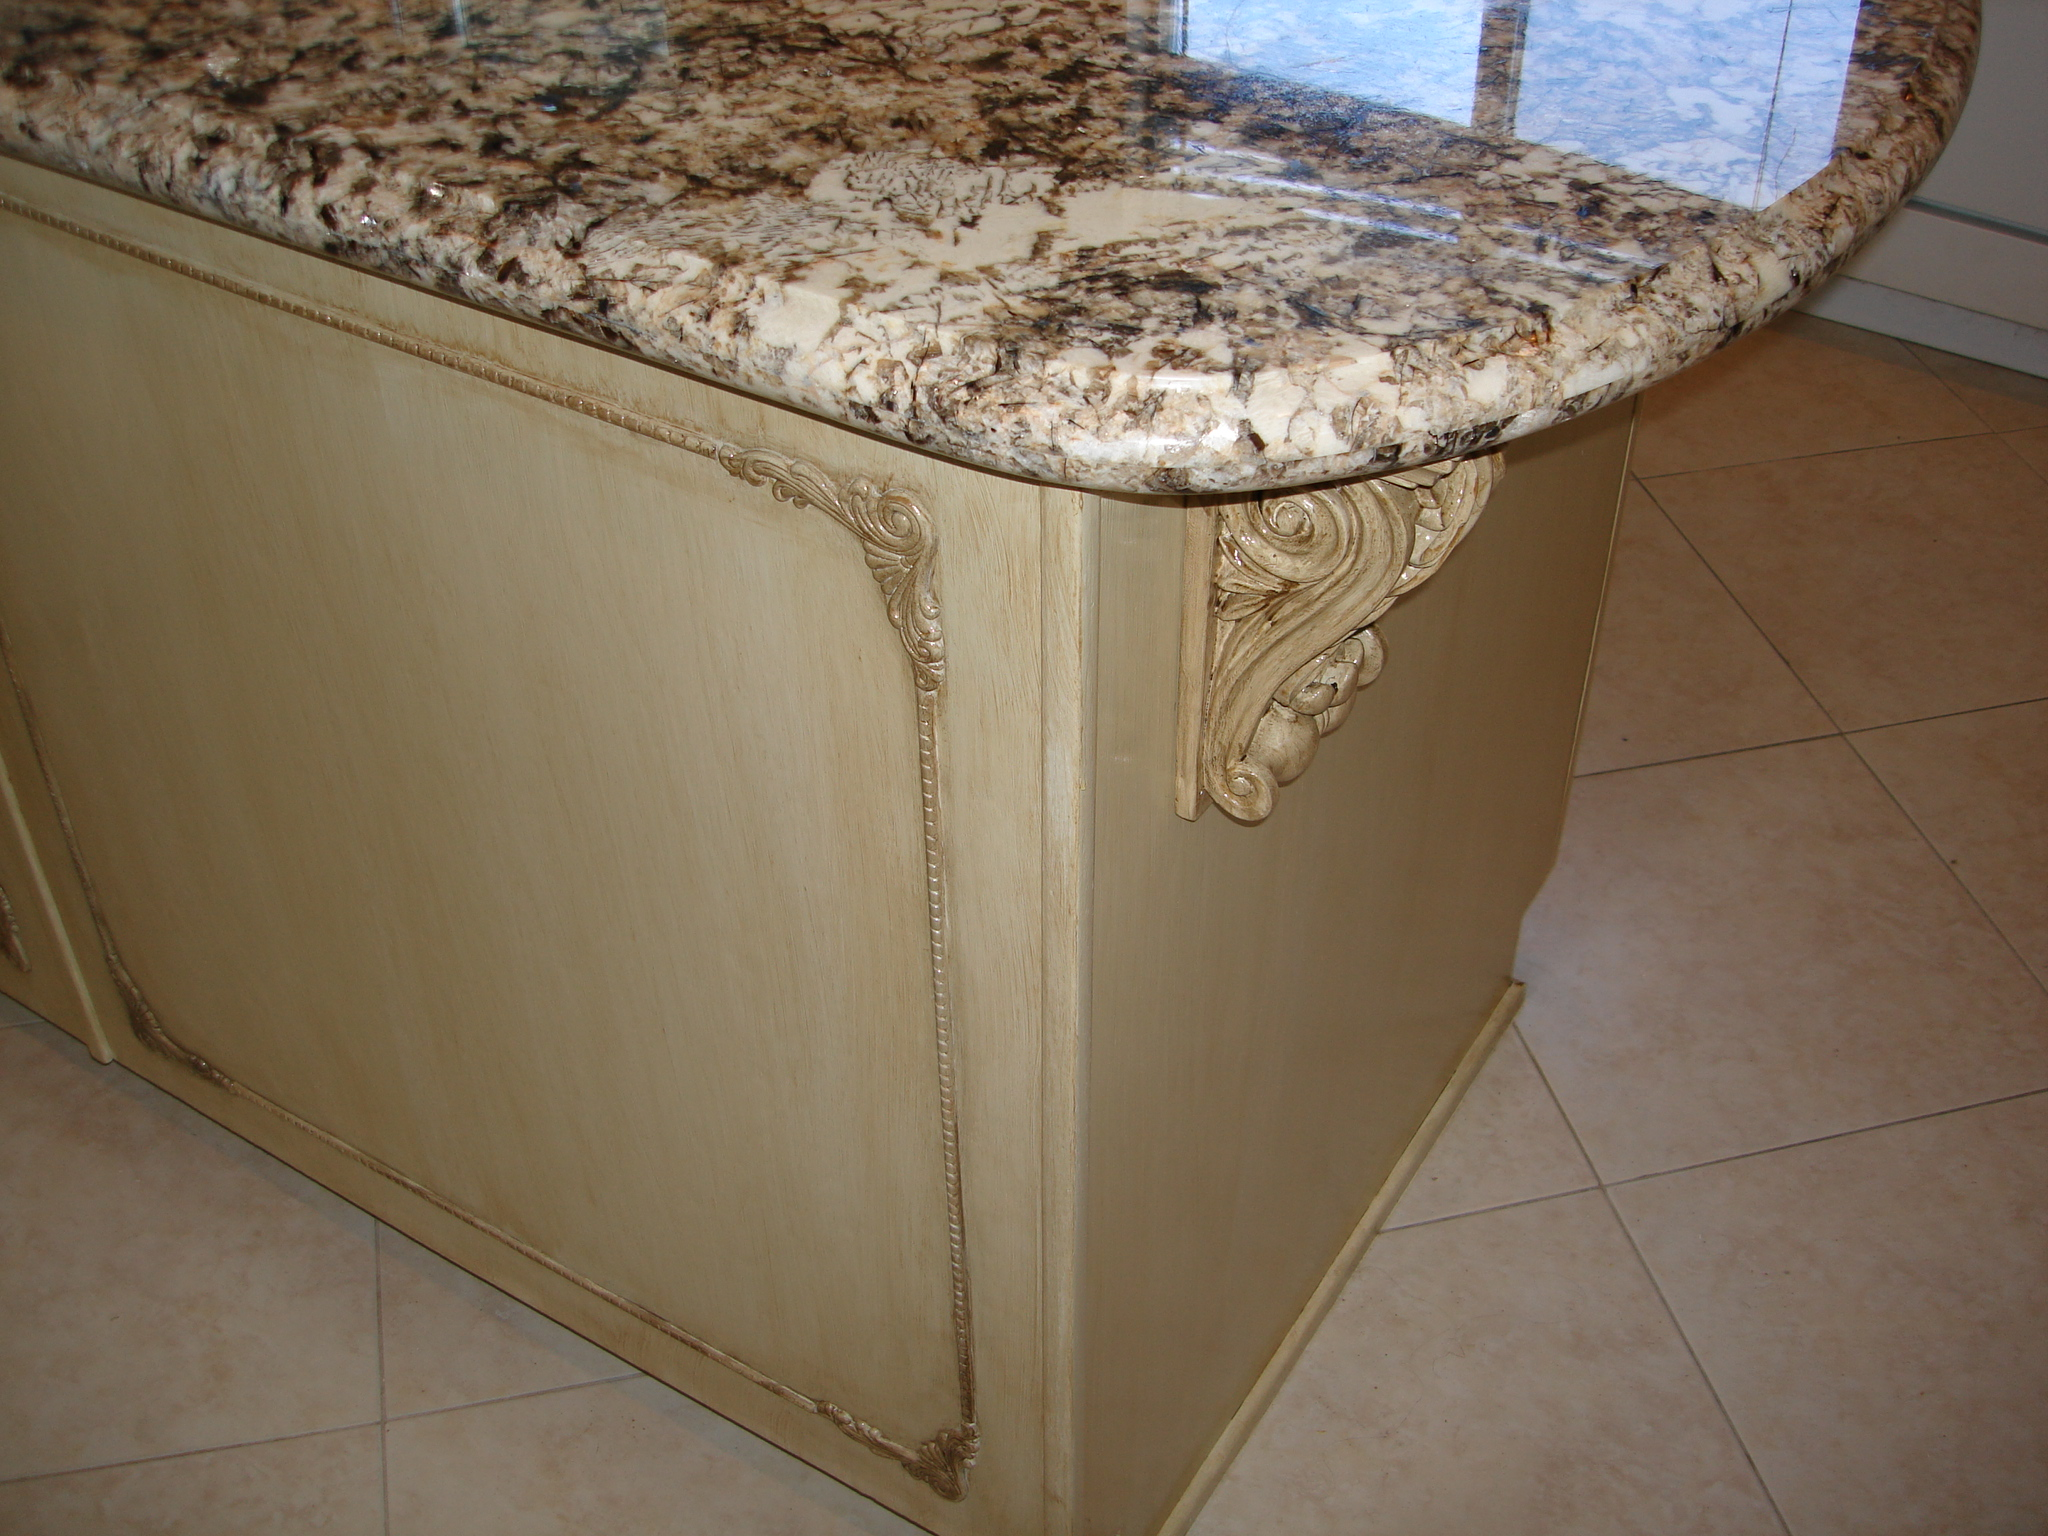 Teastained_kitchen_cabinets_detail.jpg